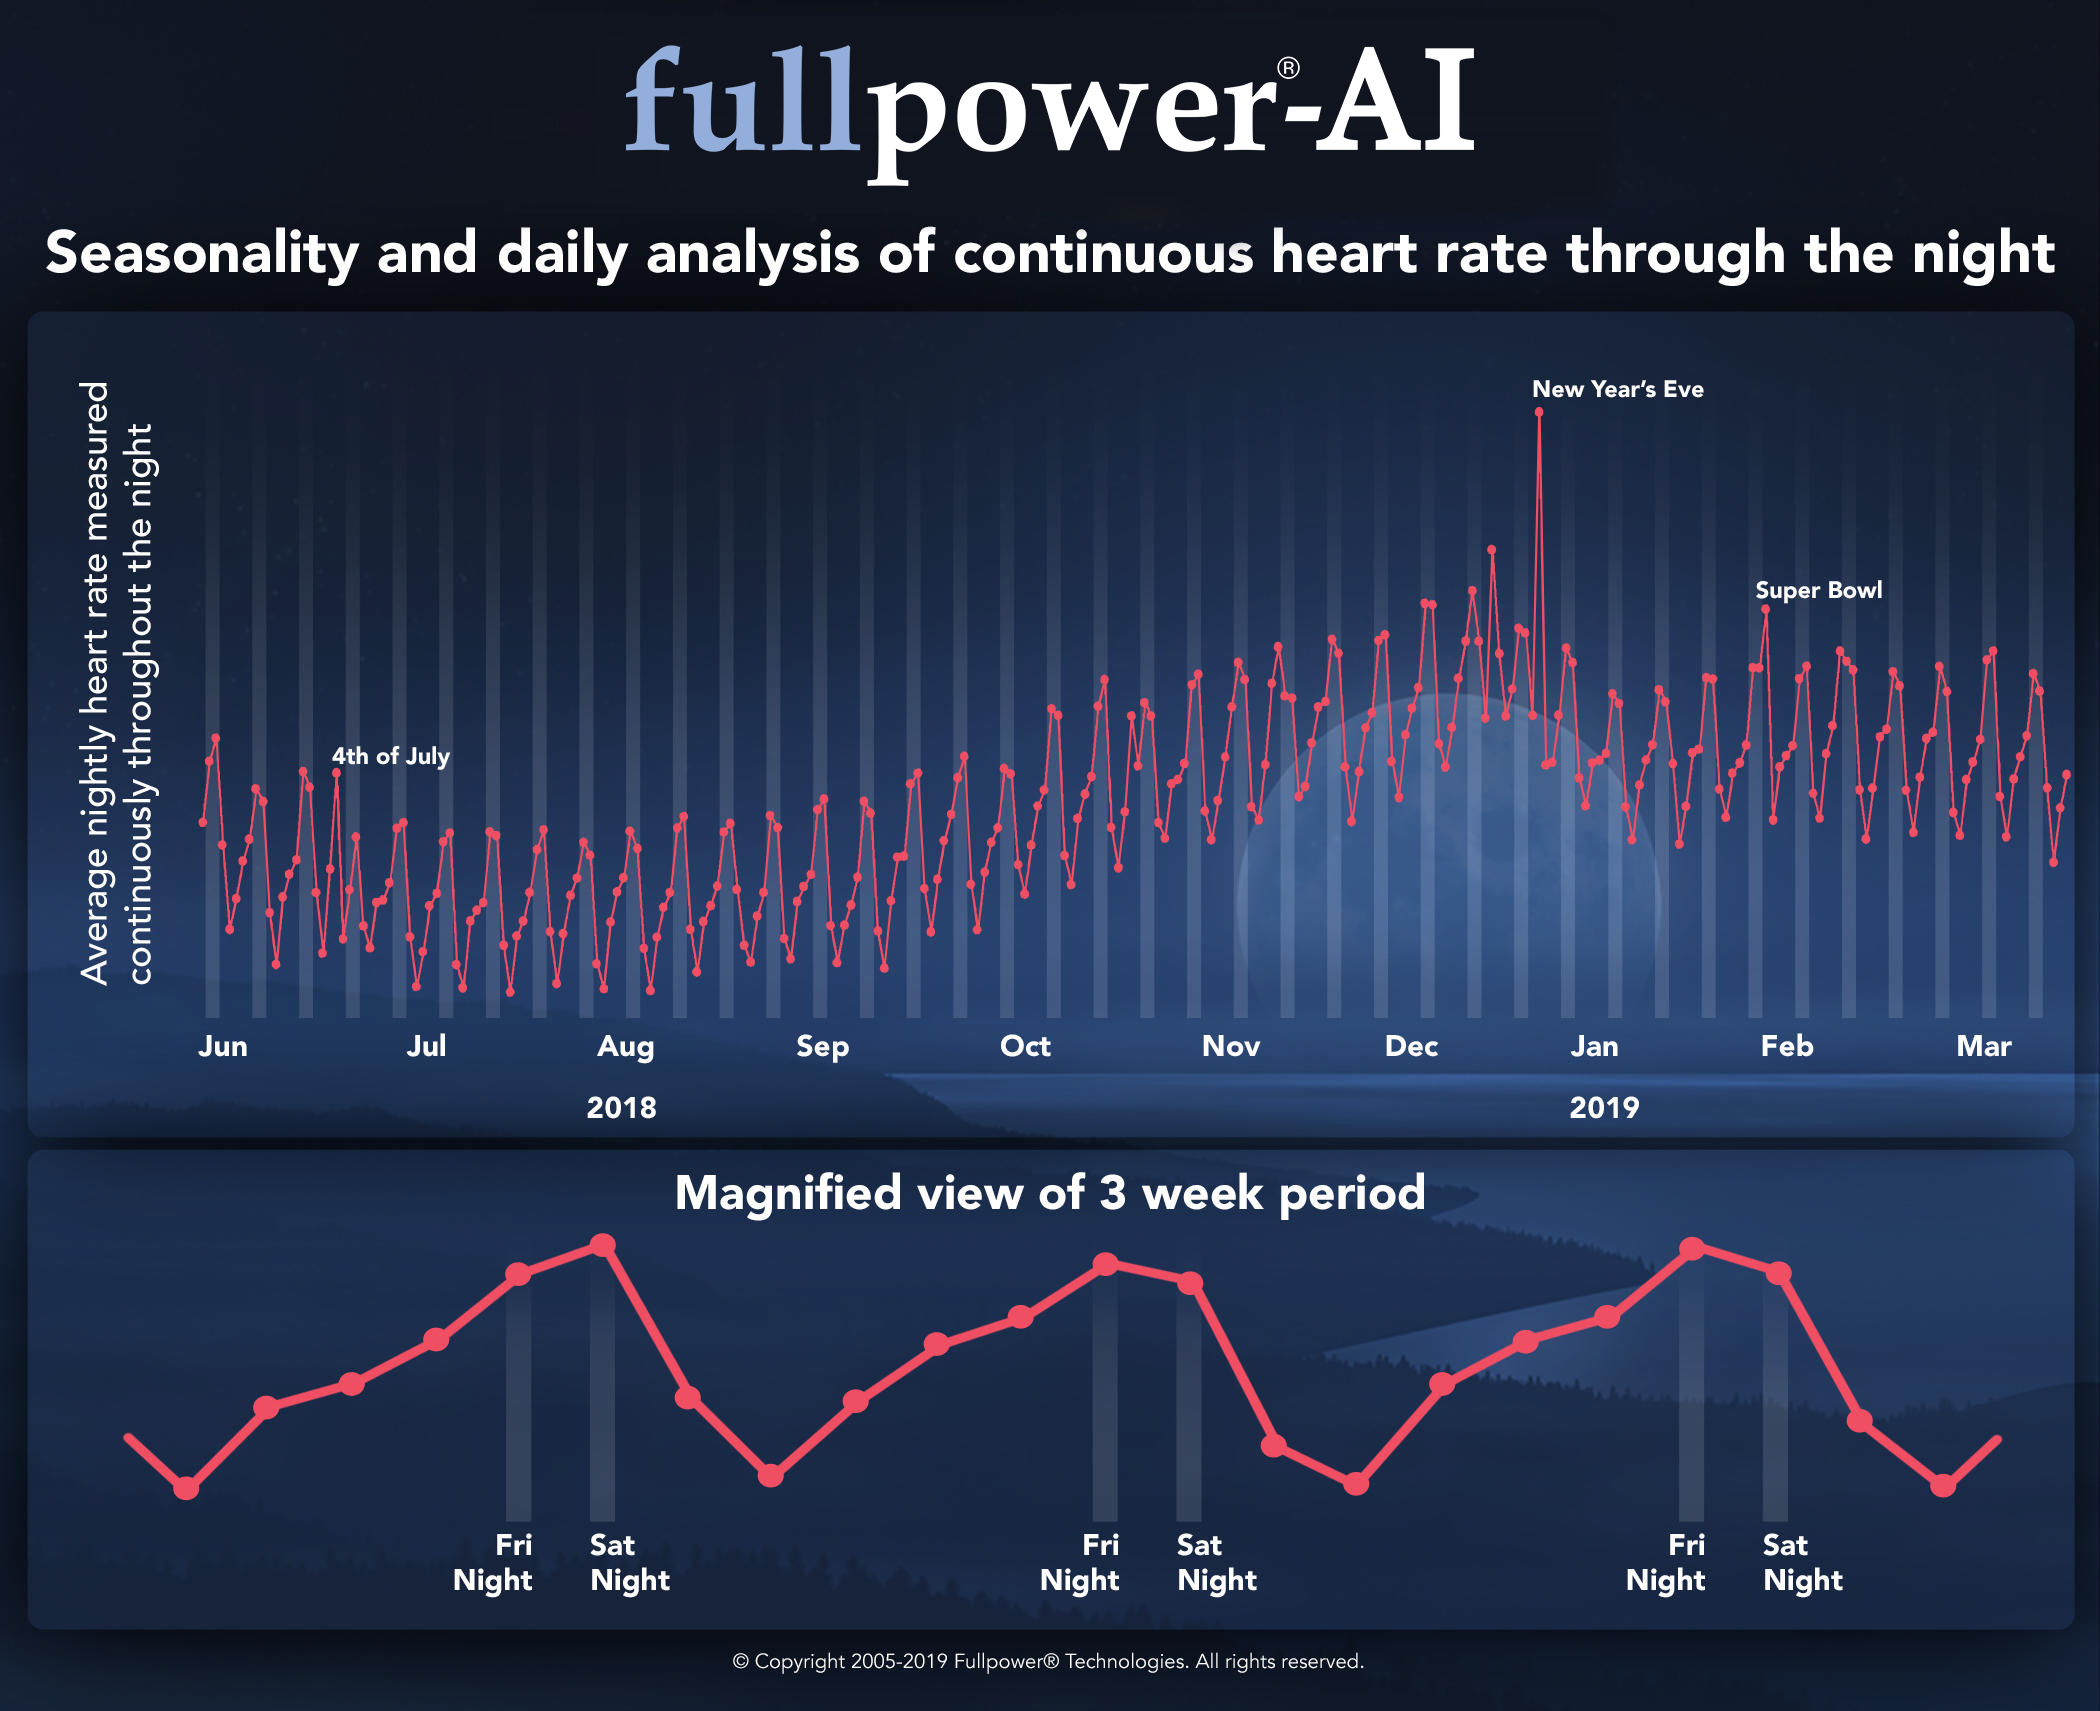 seasonality-and-daily-analysis-of-continuous-heart-rate-through-the-night